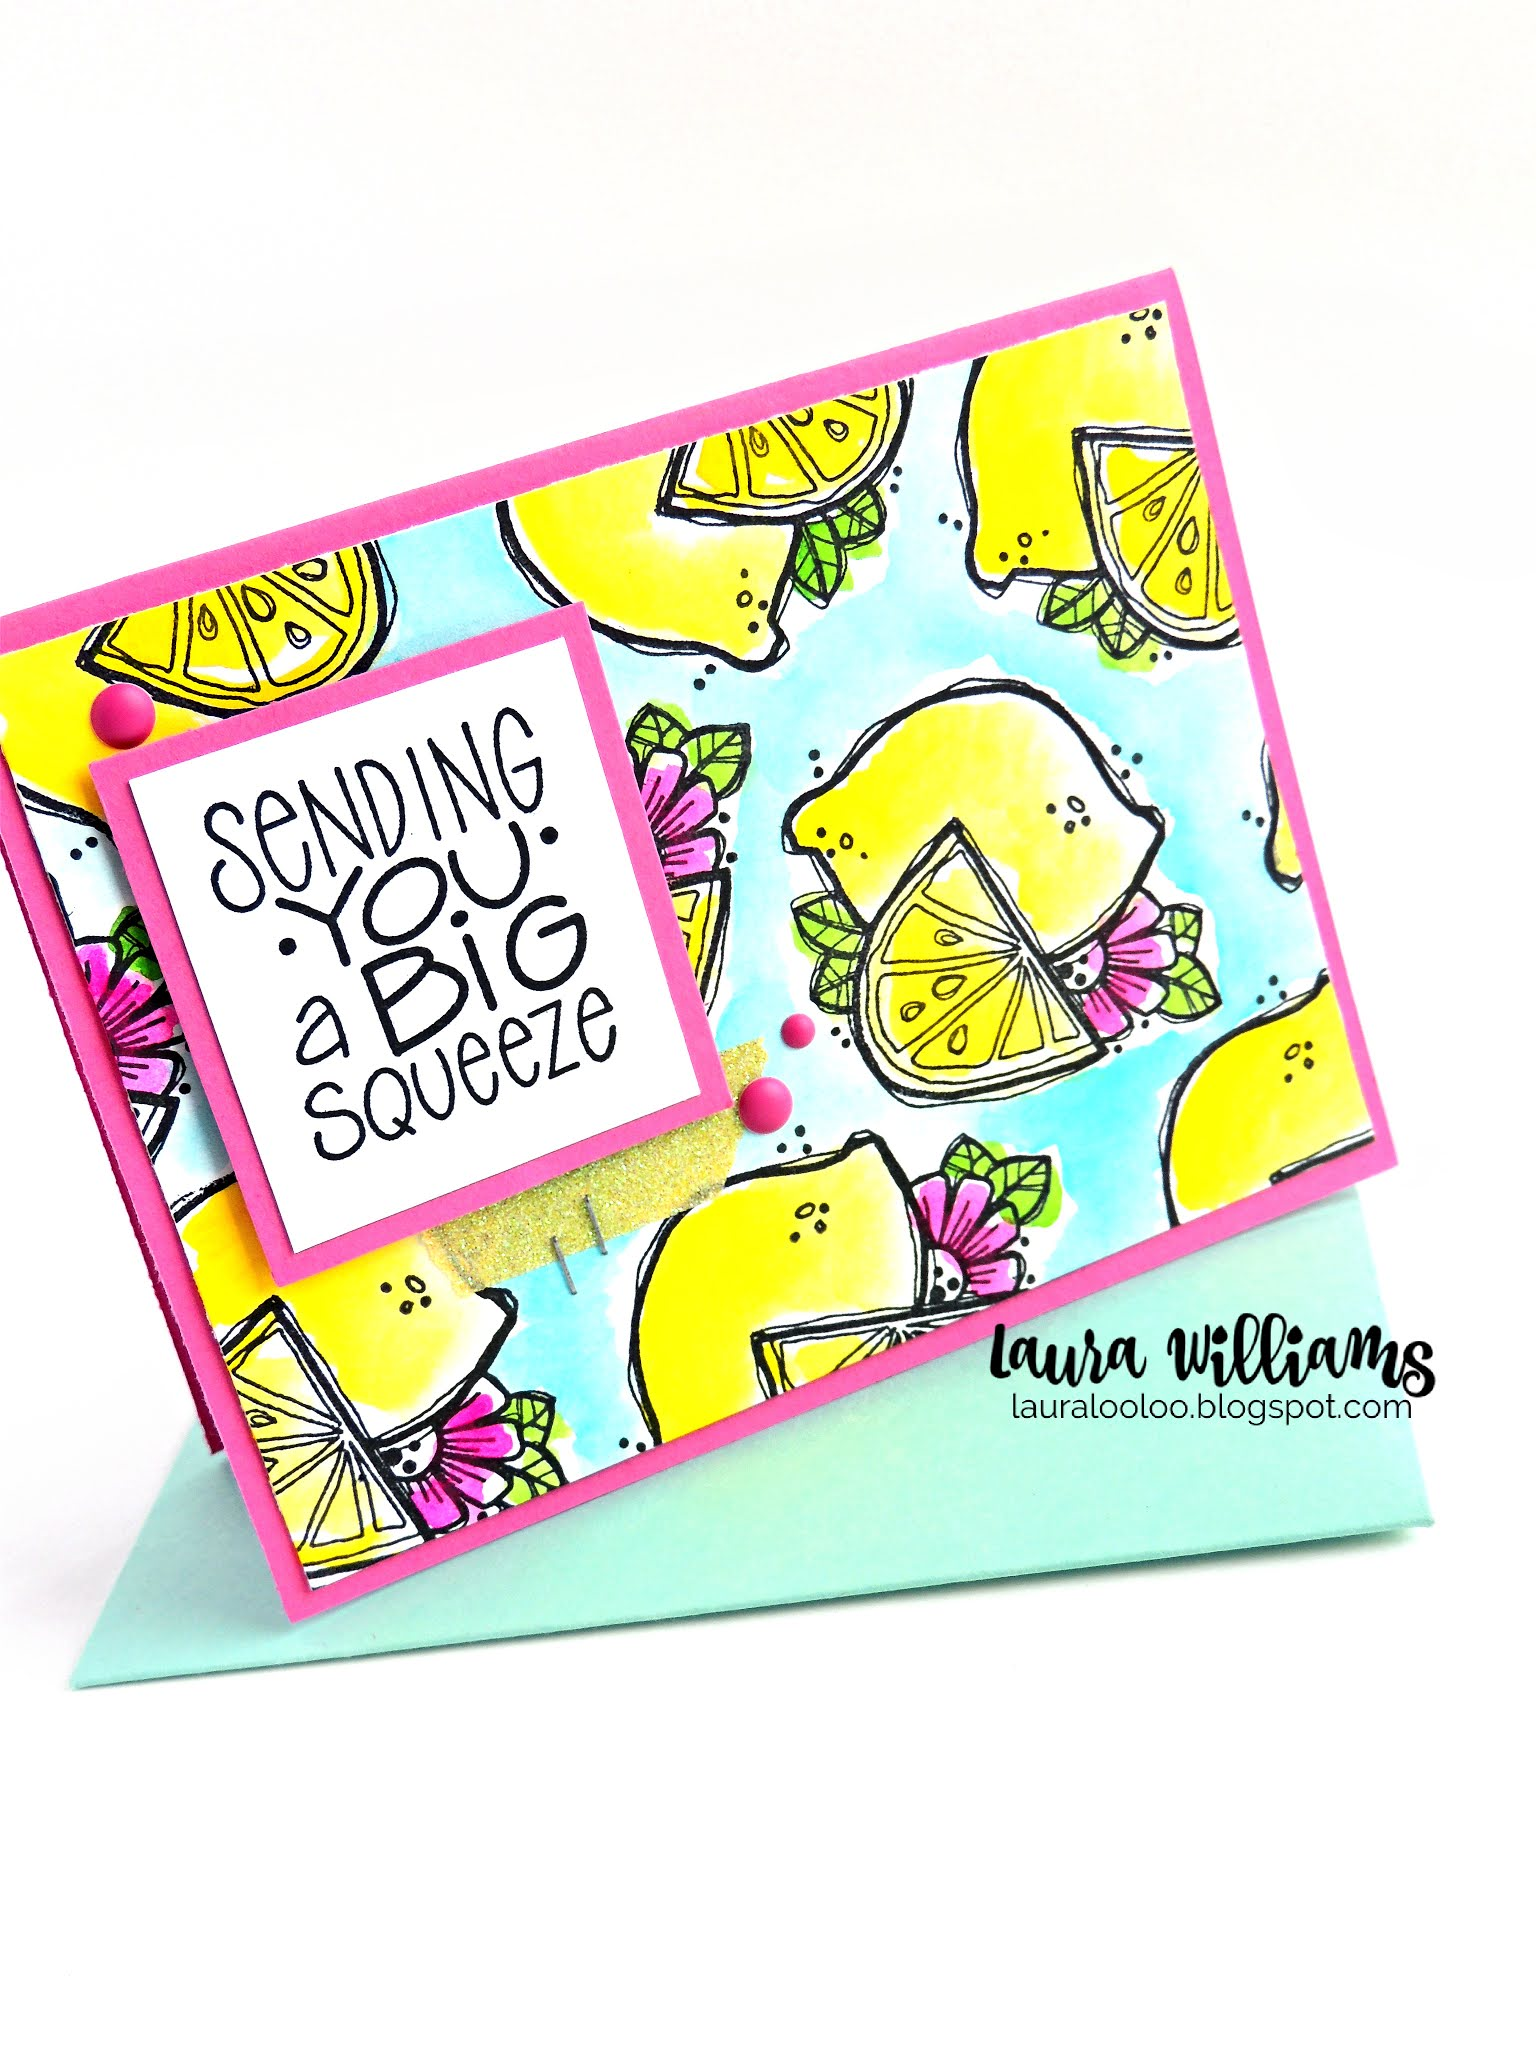 Make a fresh summer handmade card with lemon stamps from Impression Obsession and watercolor paints for a colorful and fruity fun card making project. Stop by my blog to see all the details on this summery handmade card idea!